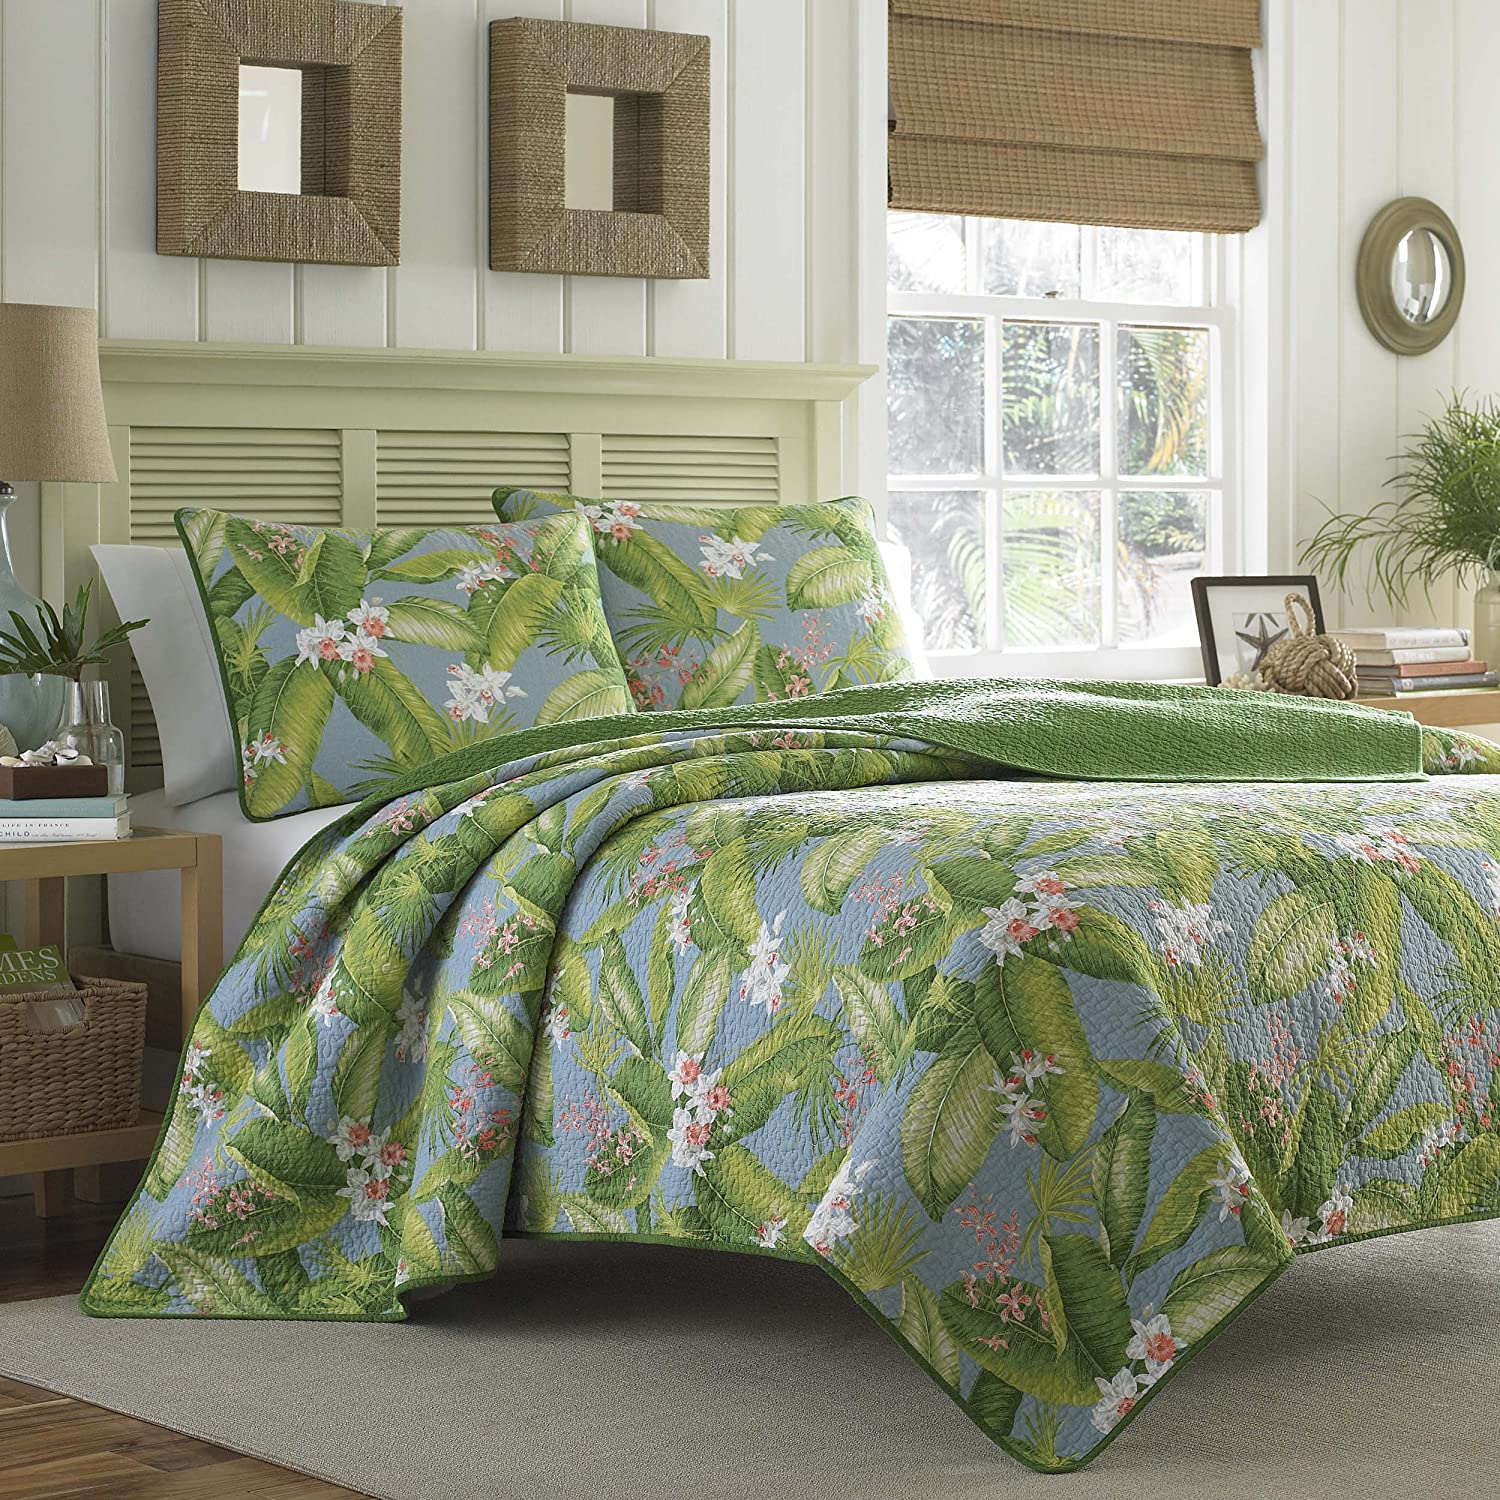 Lovely Amazon.com: Tommy Bahama Aregada Dock Sky Quilt Set, King, Sky: Home U0026  Kitchen